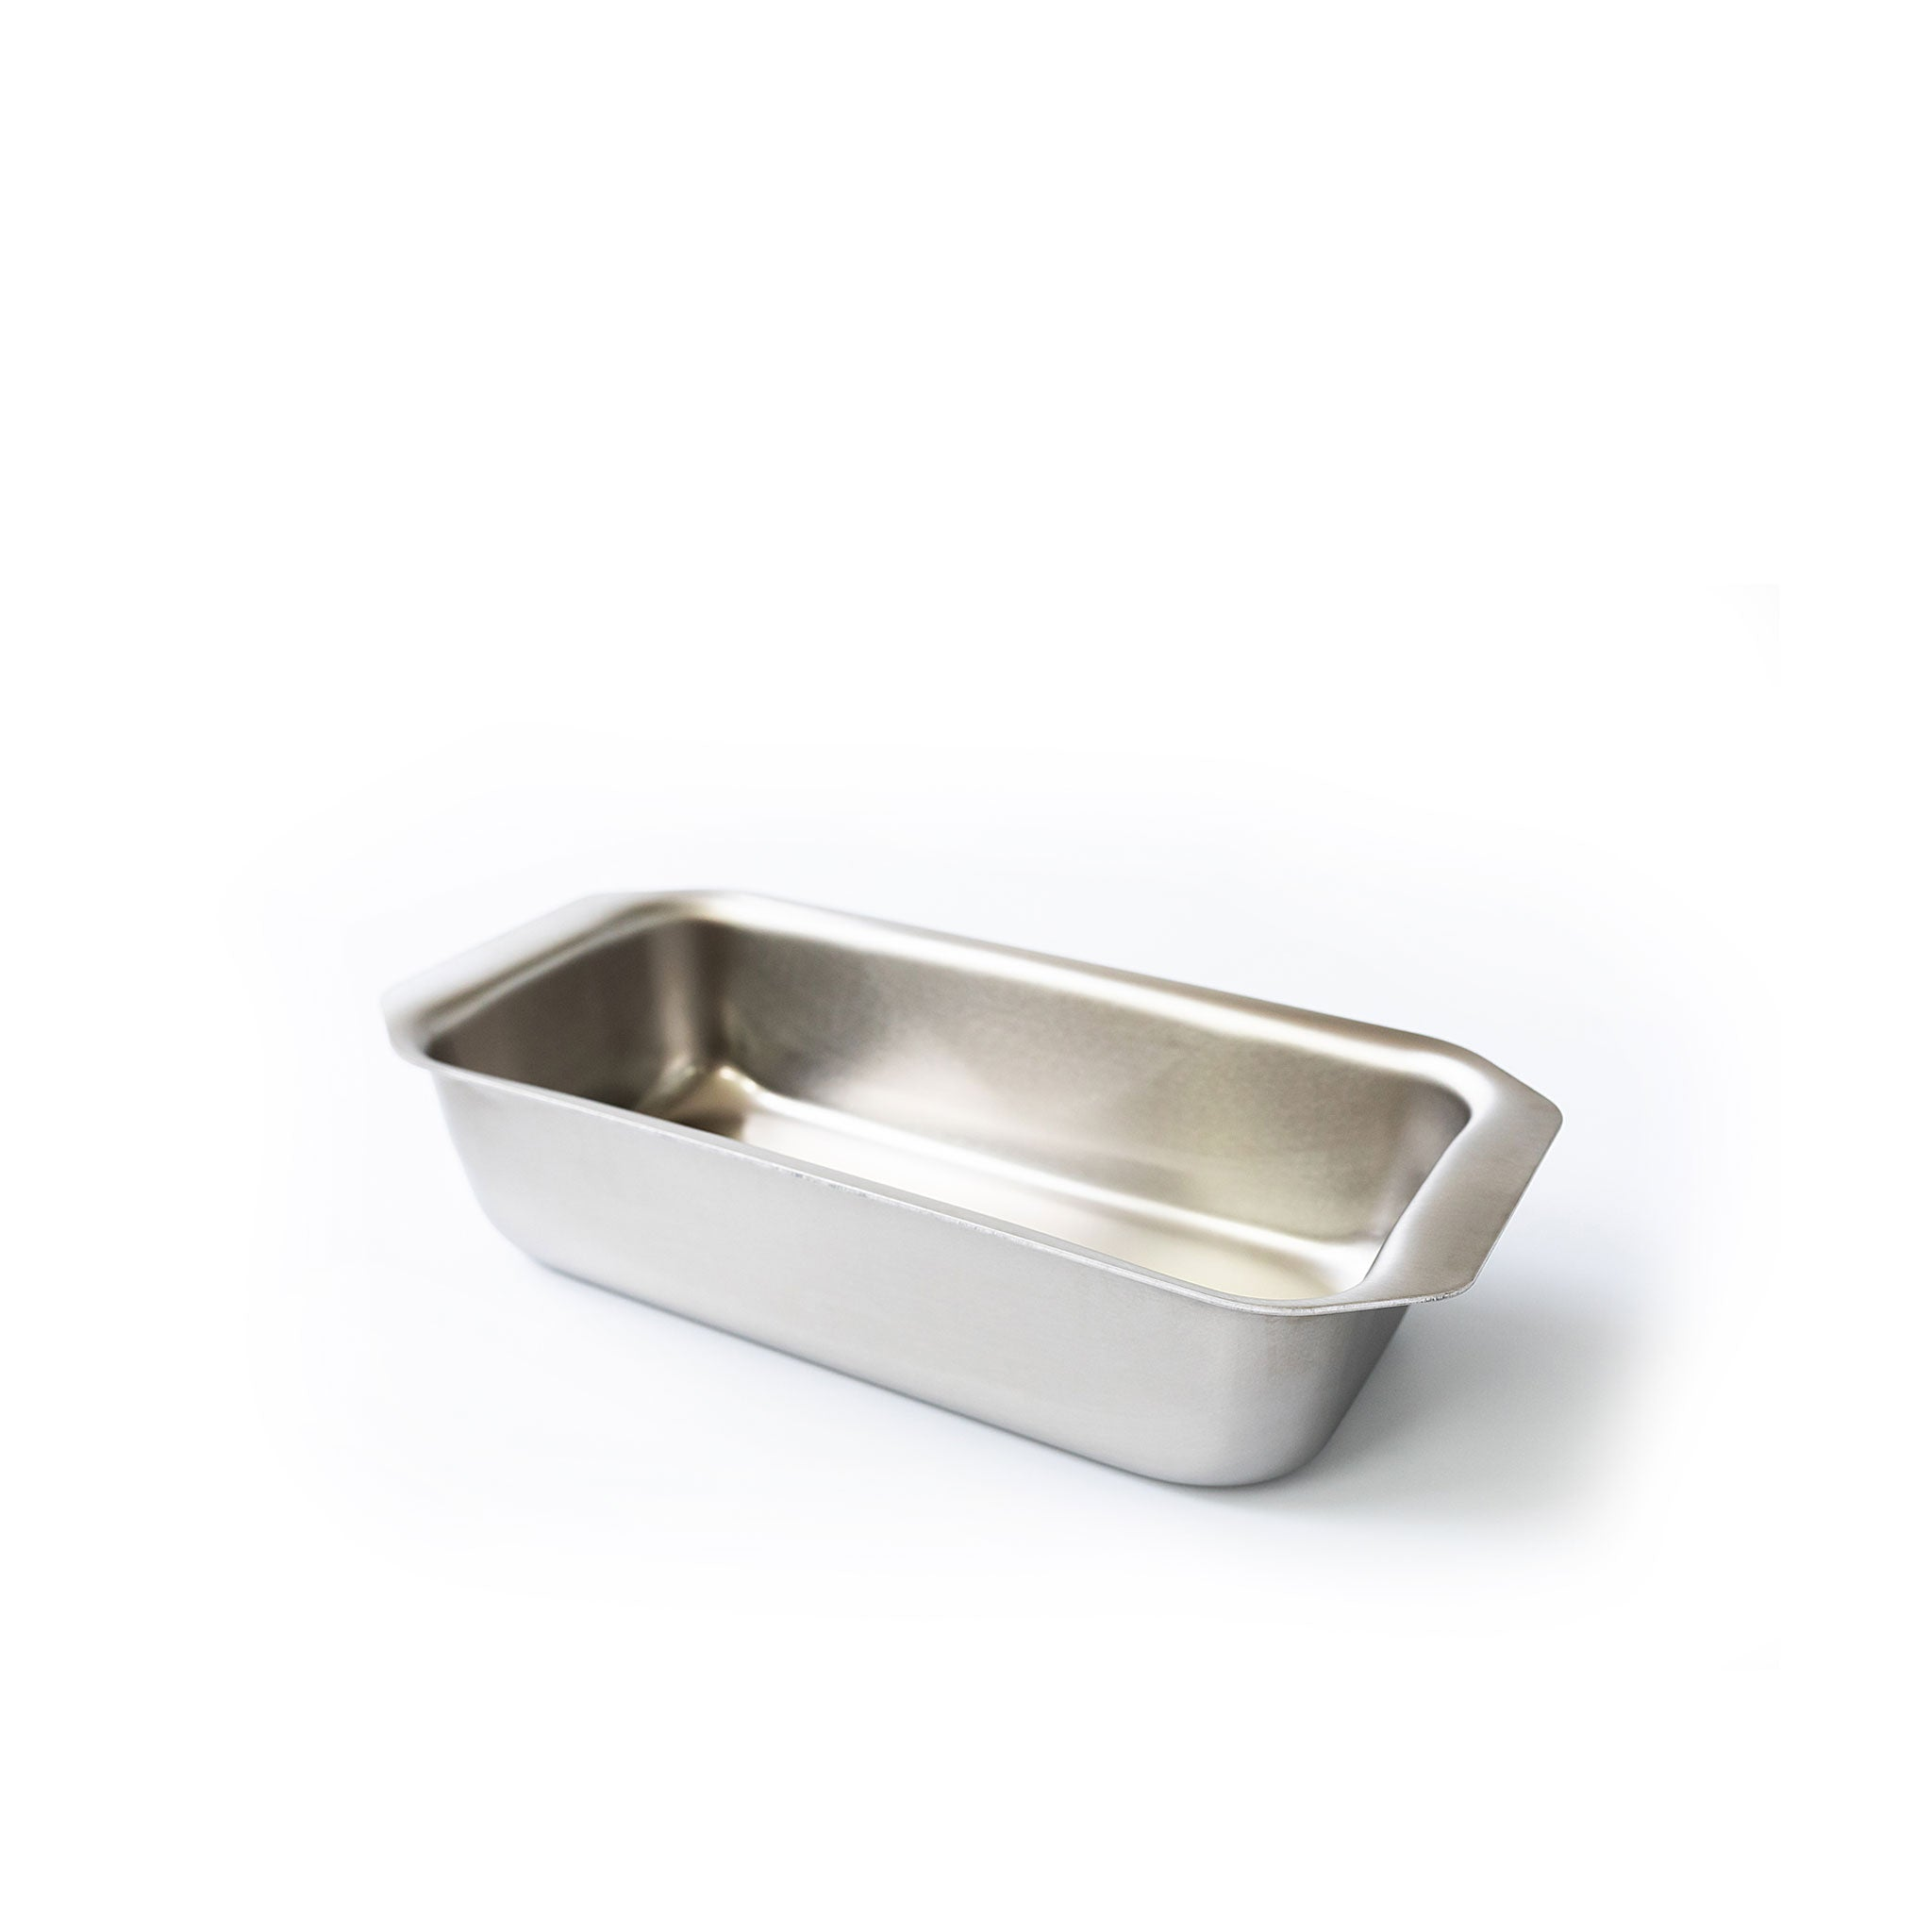 **New Item** Loaf Pan with Tab Handles